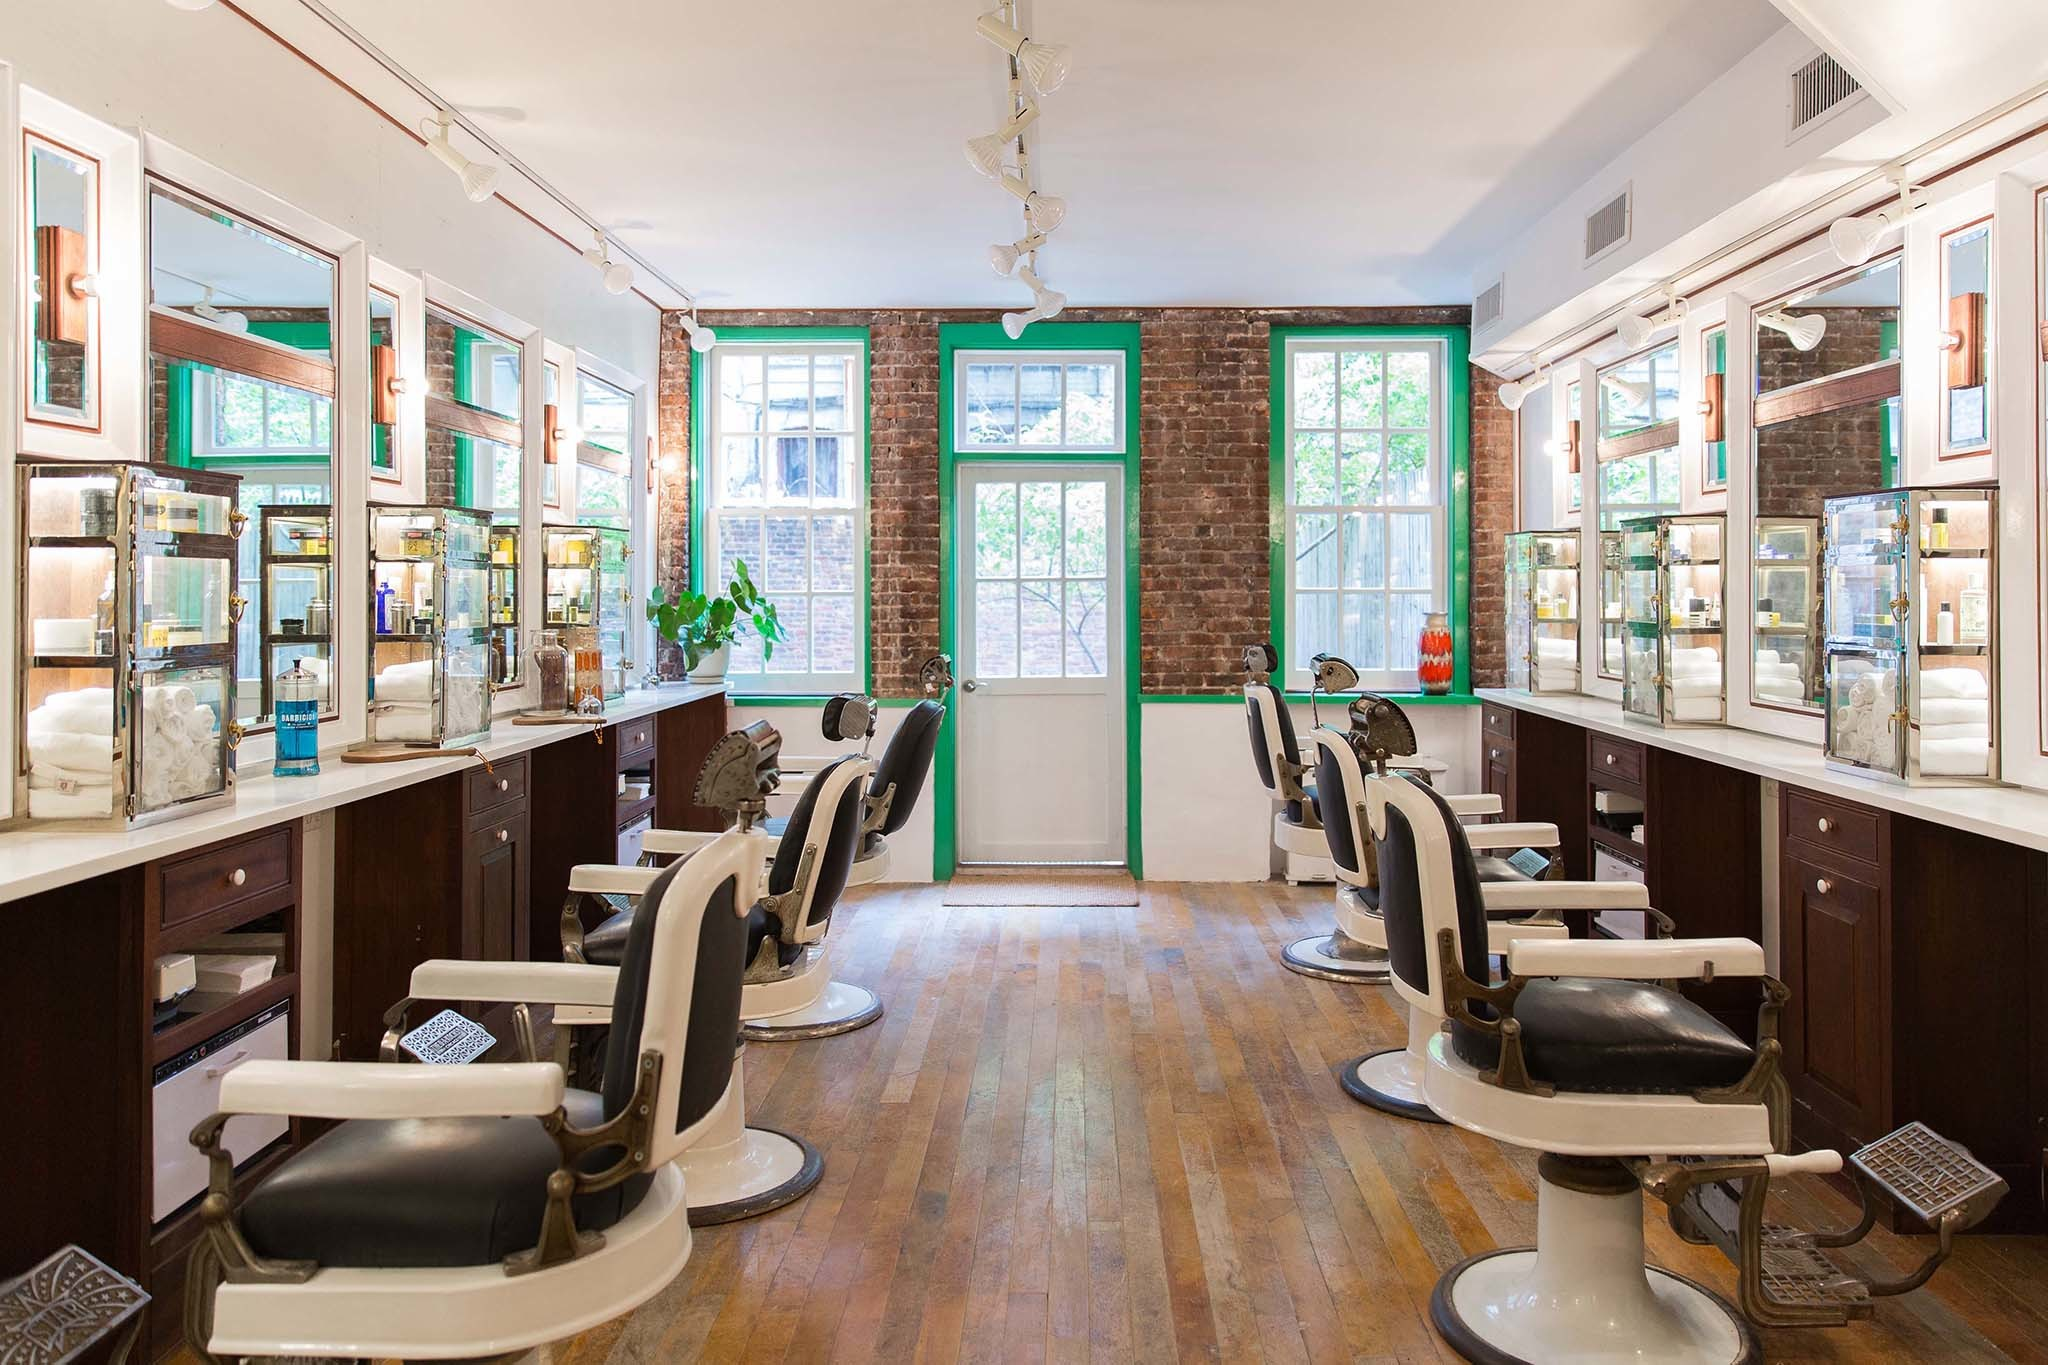 Barber shops in NYC where you can a hot shave